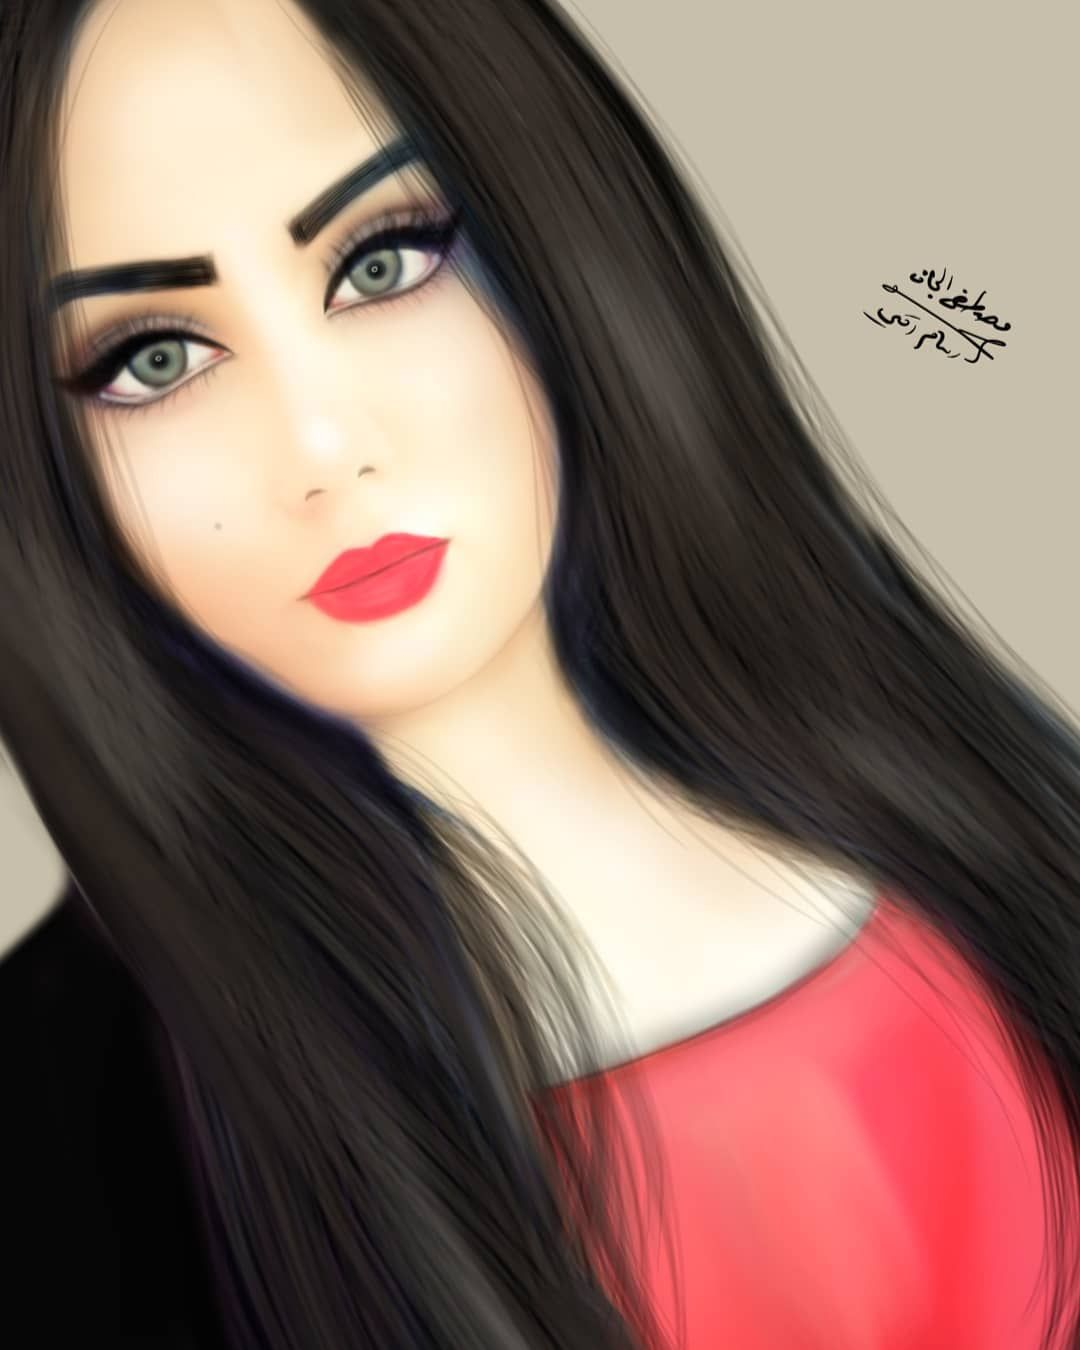 Photo By مصطفى الجاف رسام رقمي In As Sulaymaniyah Iraq With Mostafa Jaf Image May Contain 1 Person Closeup Anime Art Art Best Quotes